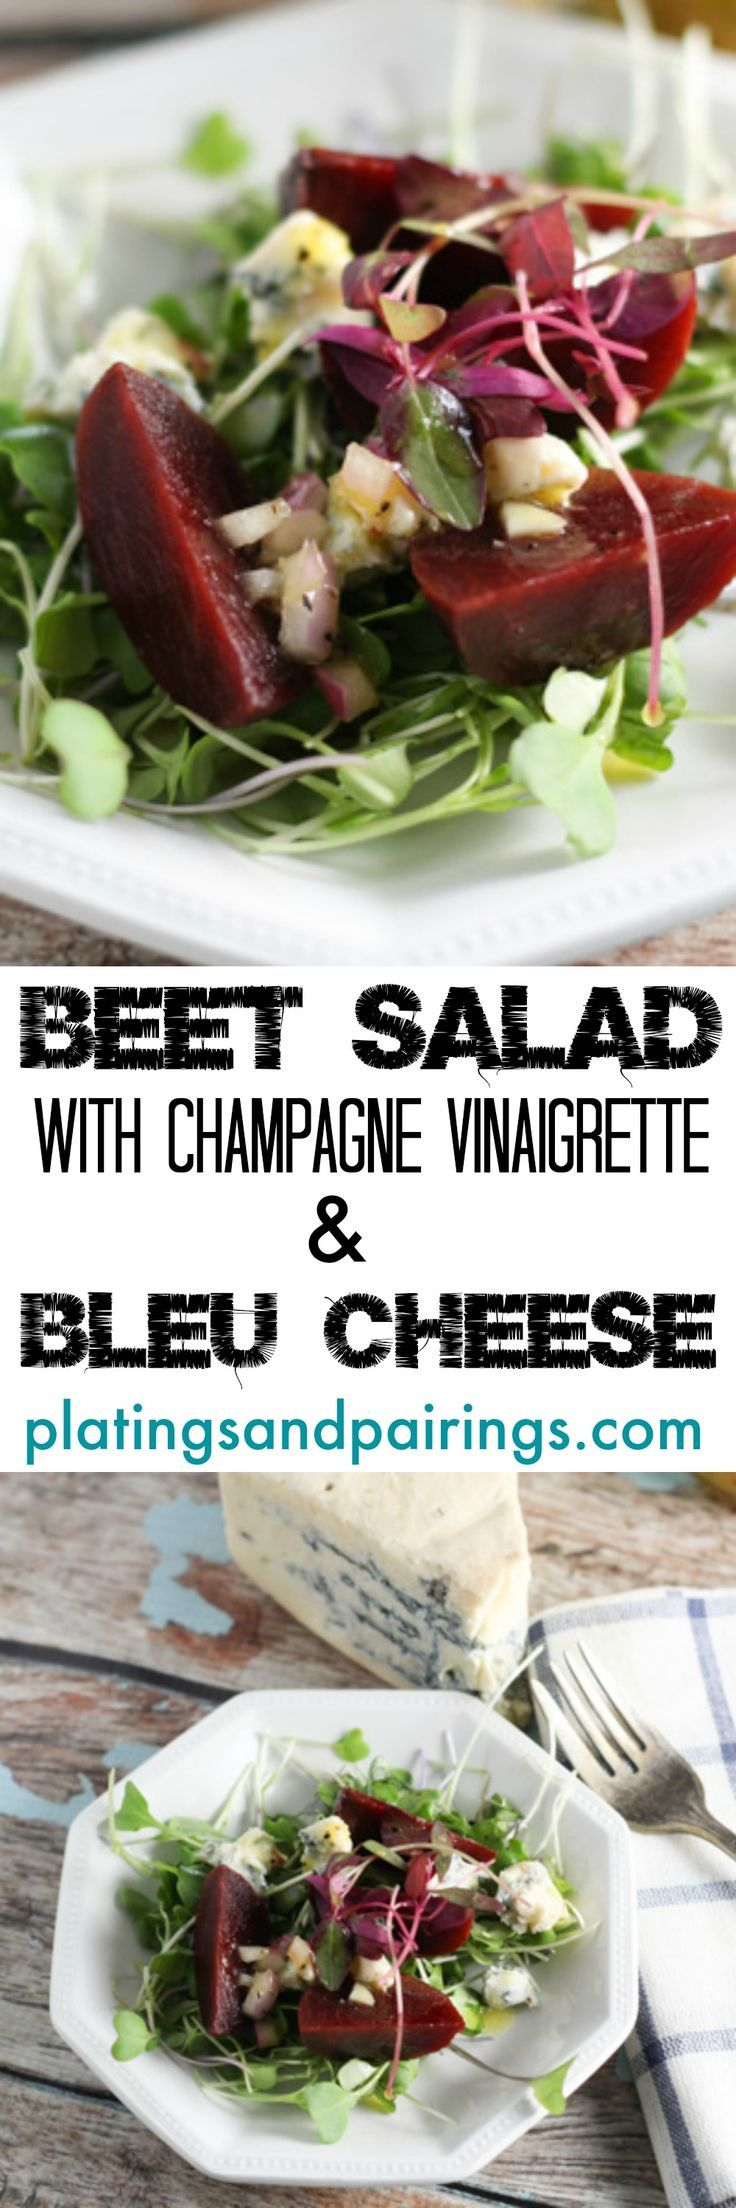 A simple salad of Roasted Beets dressed with Bleu Cheese